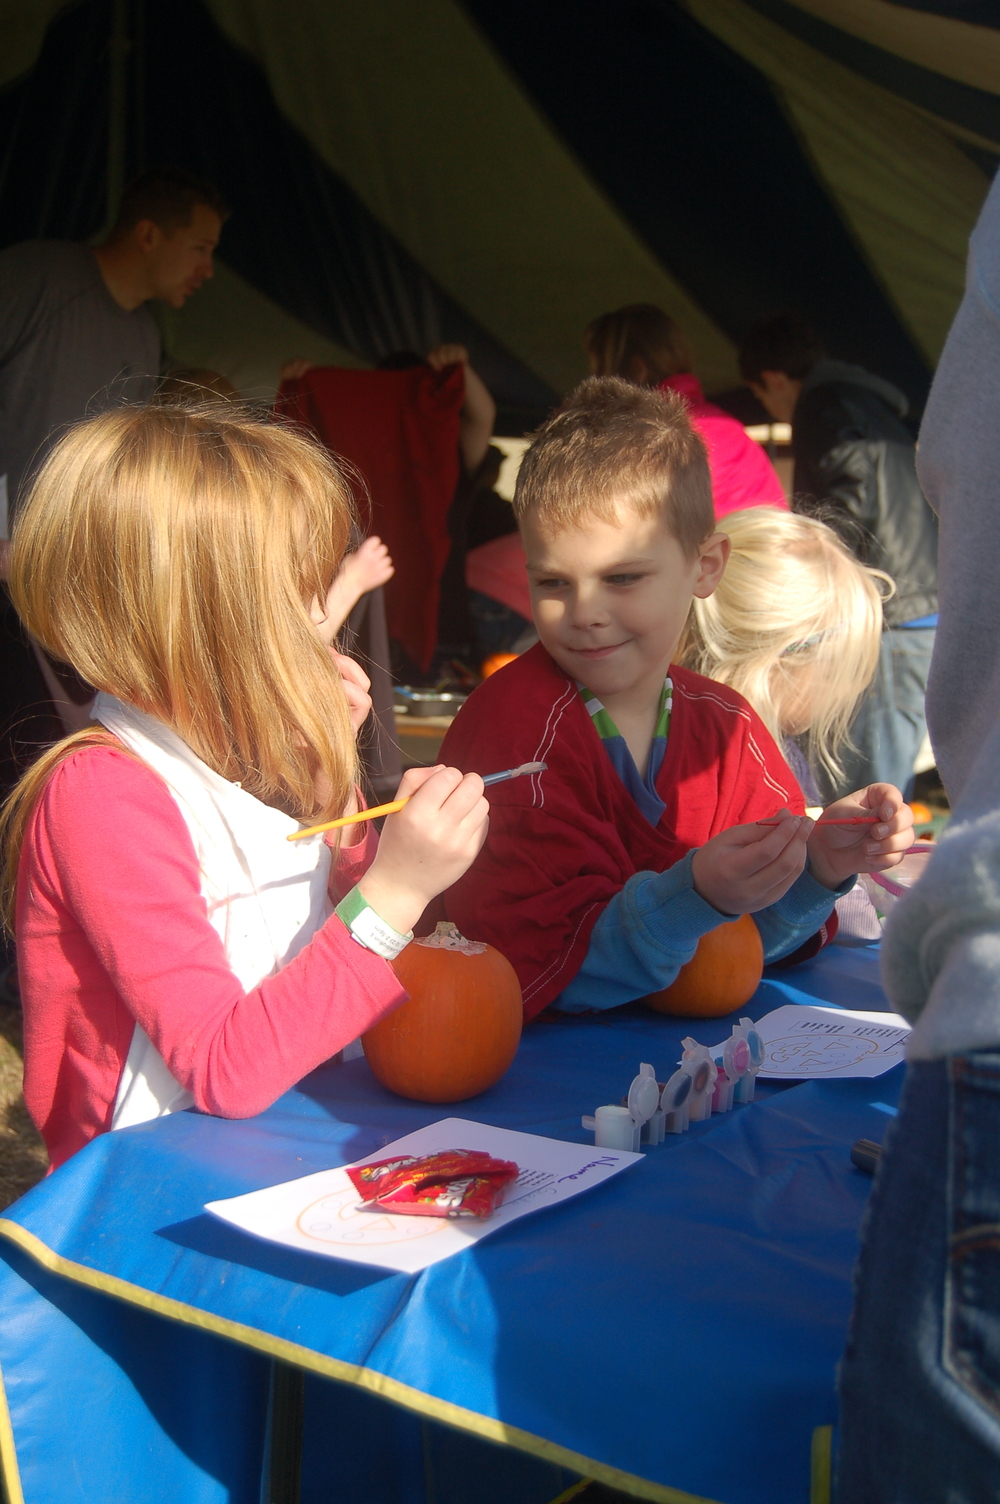 Painting Pumpkins at the Pumpkin Launch